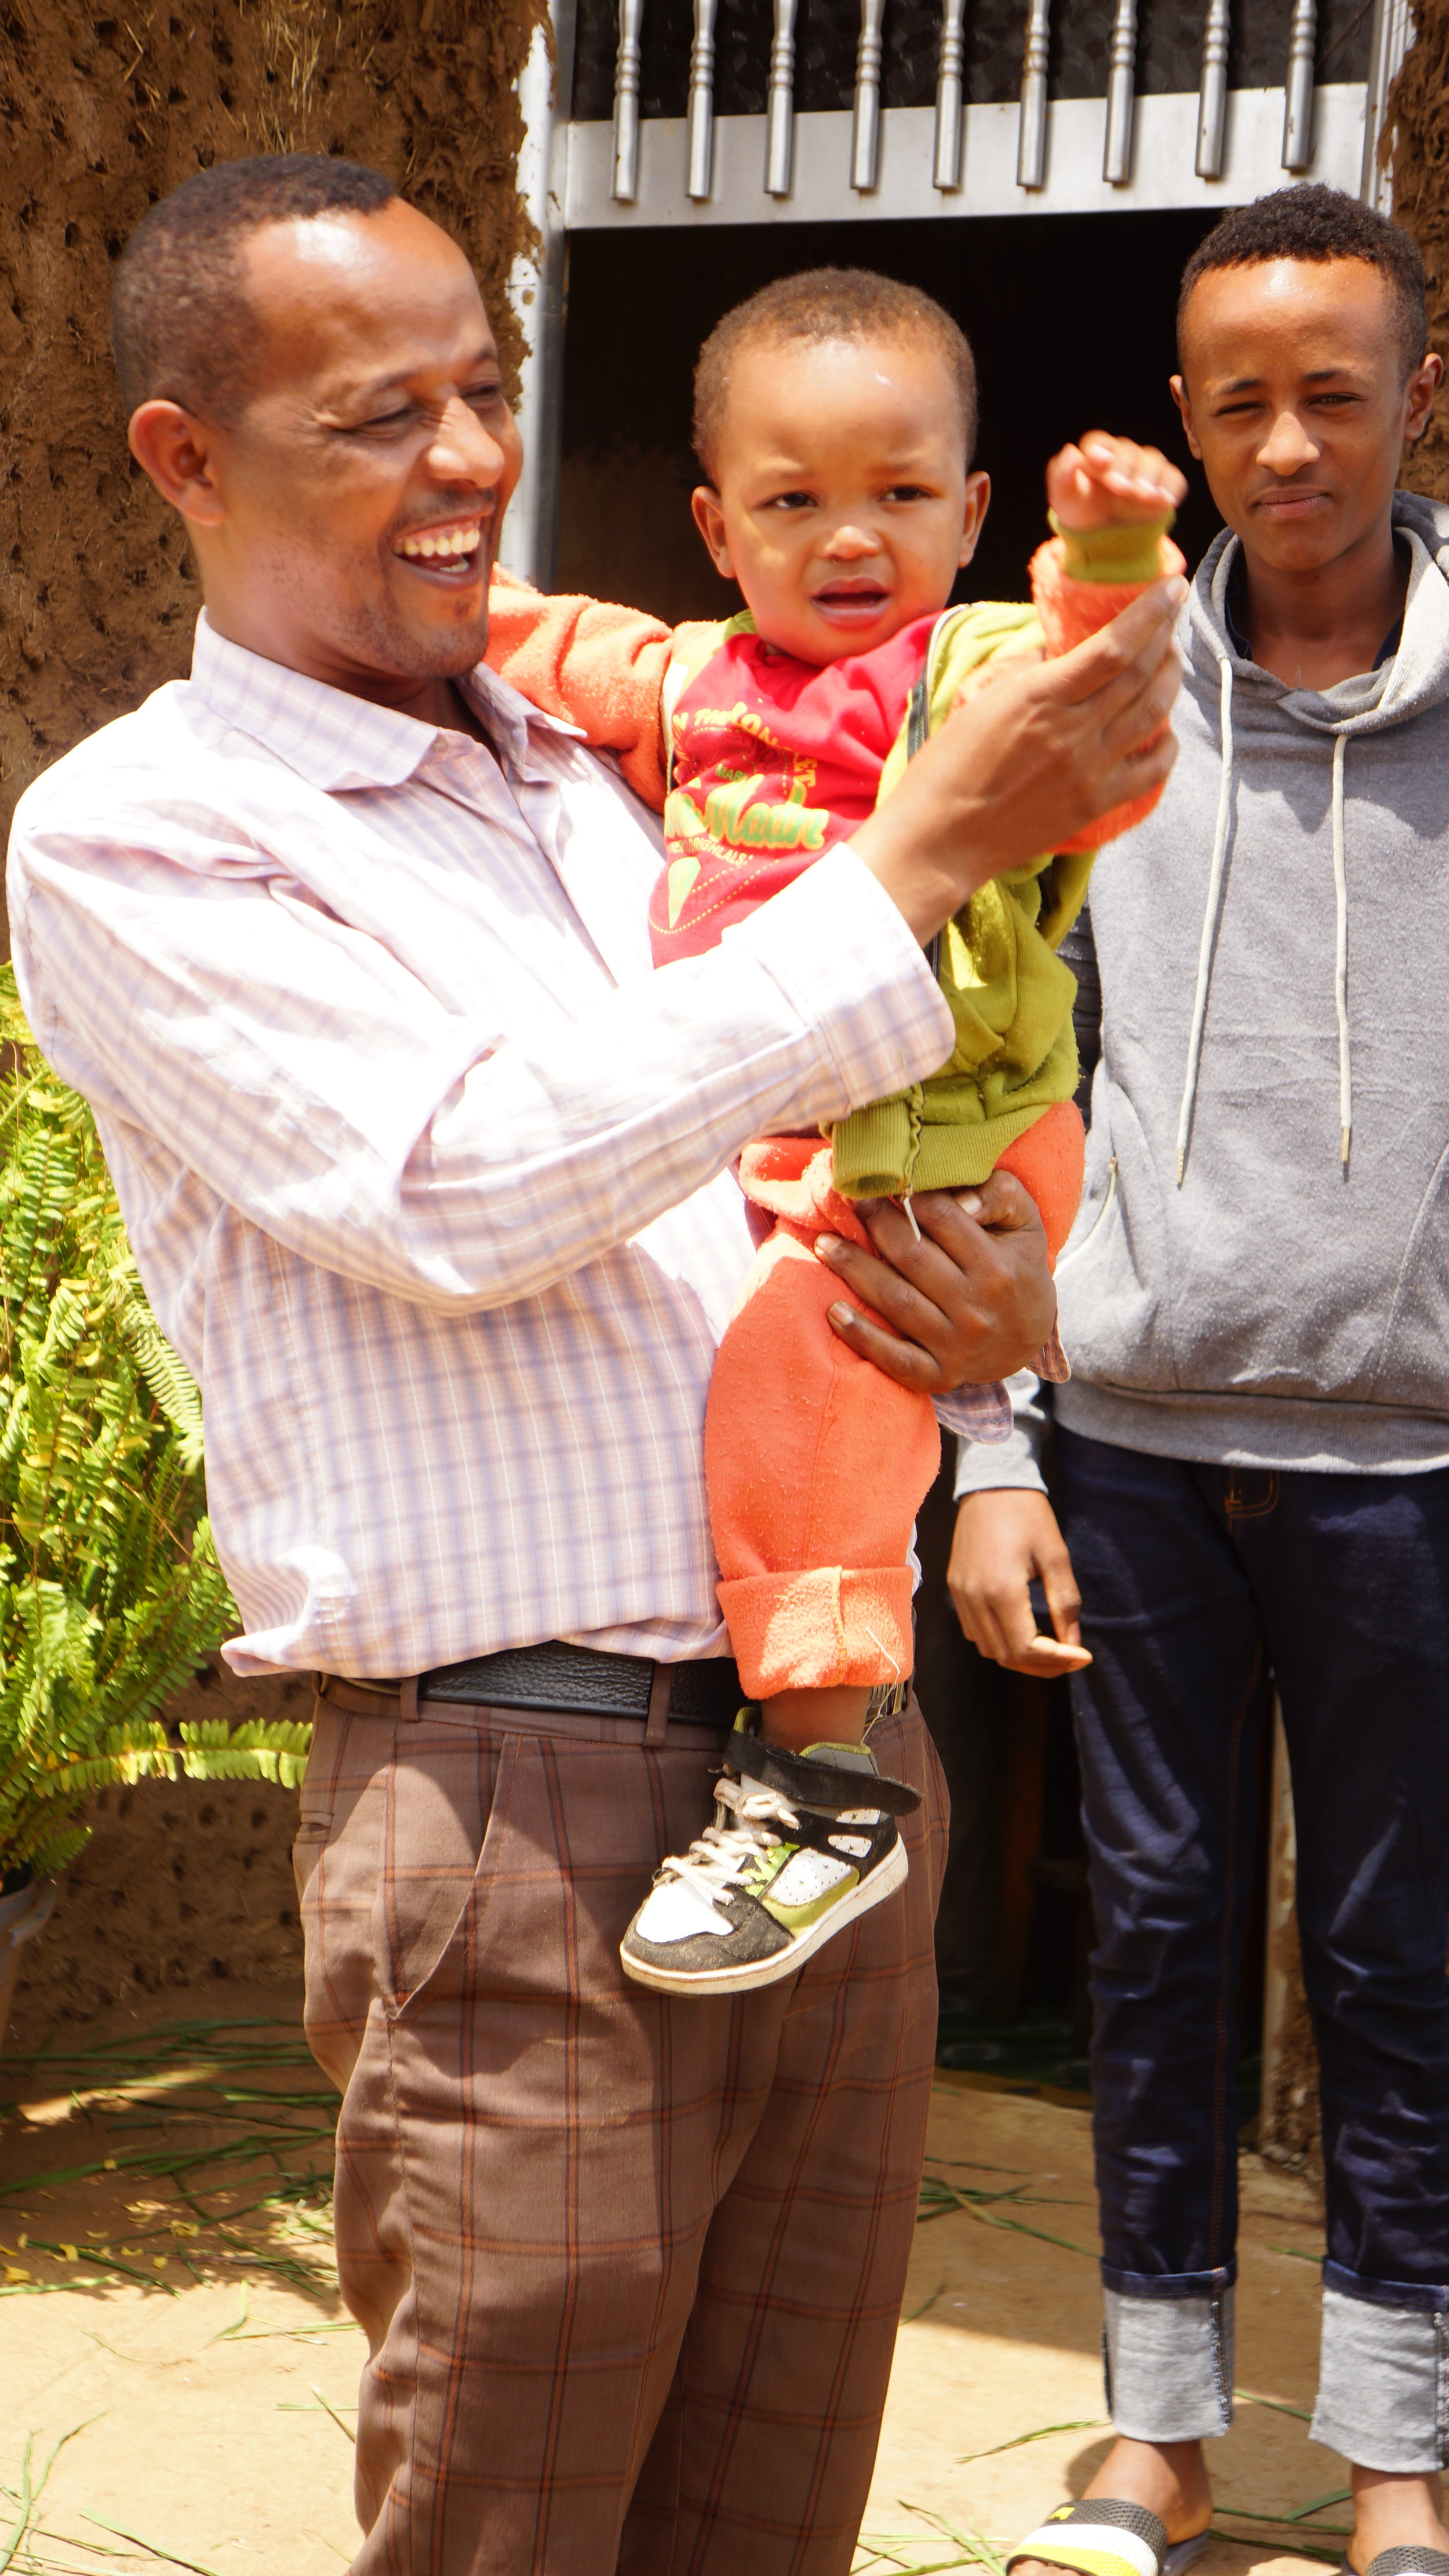 Sintayu T. with his new father and his older brother. He has bonded so strongly with his new family, and is clearly loved and cherished as he deserves to be.